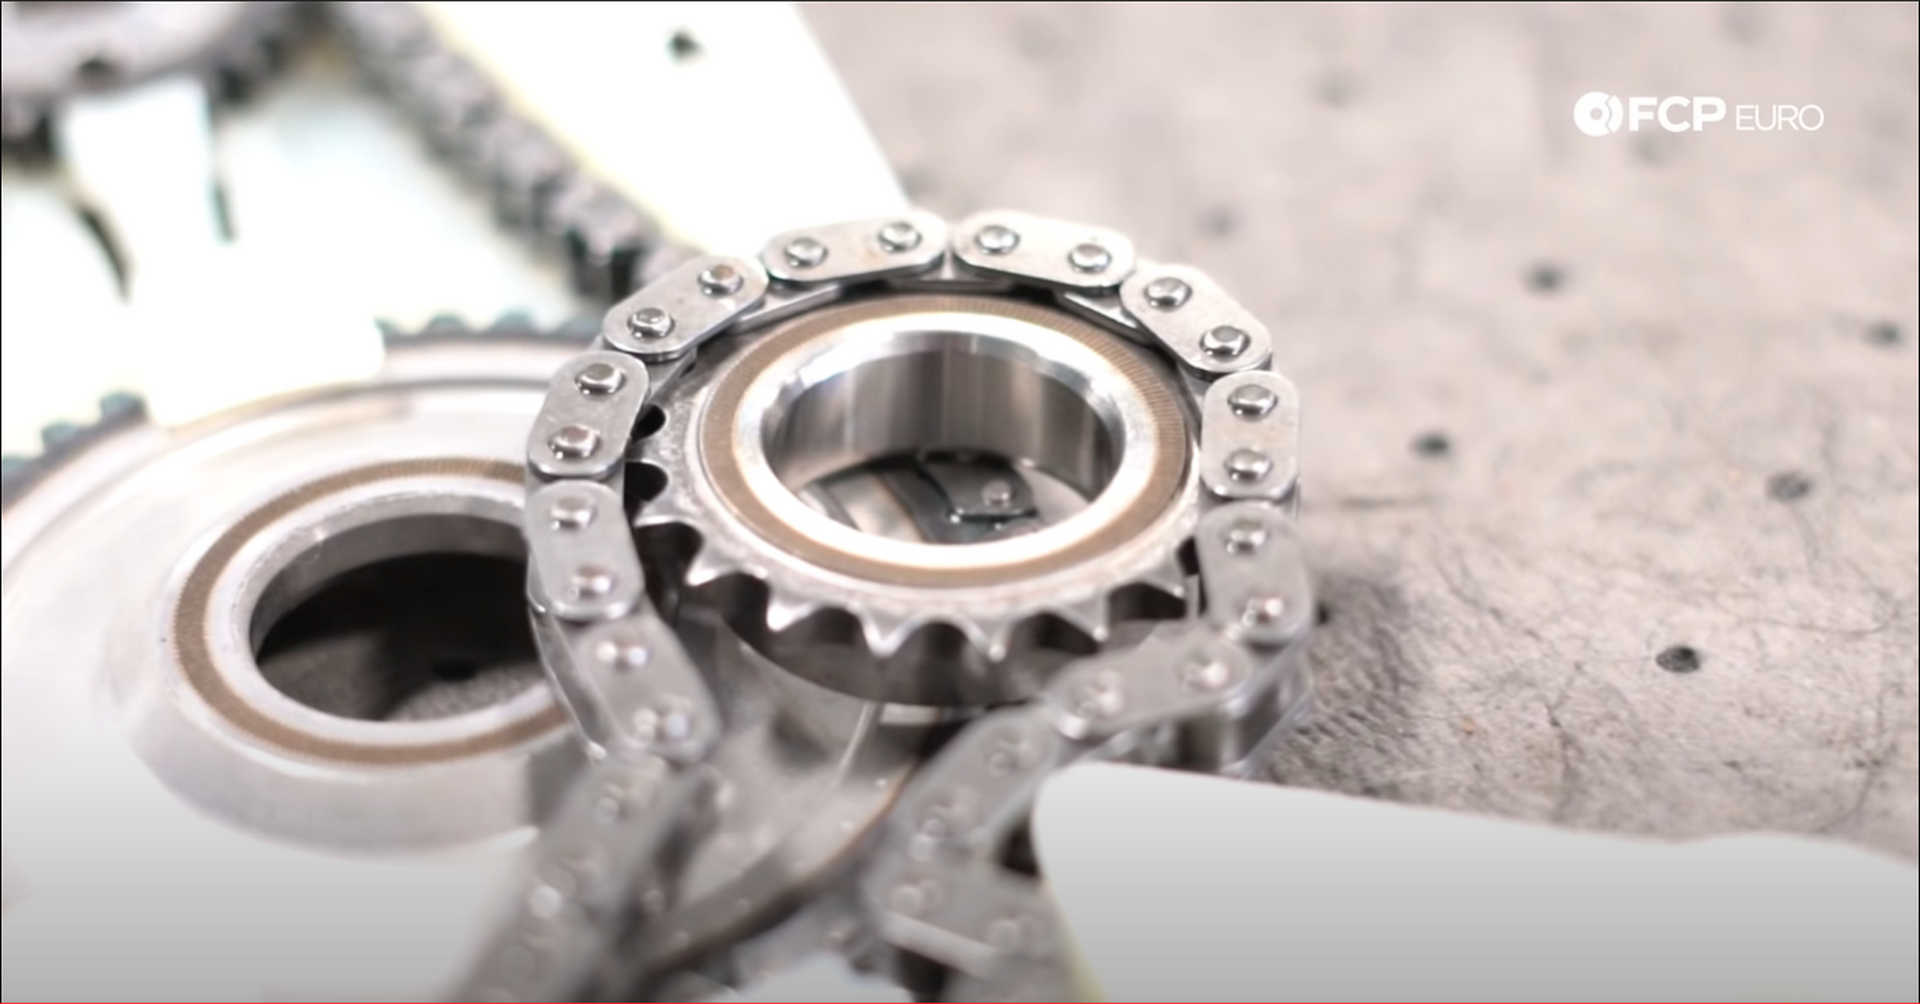 DIY BMW N20 Timing Chain new timing chain sprocket